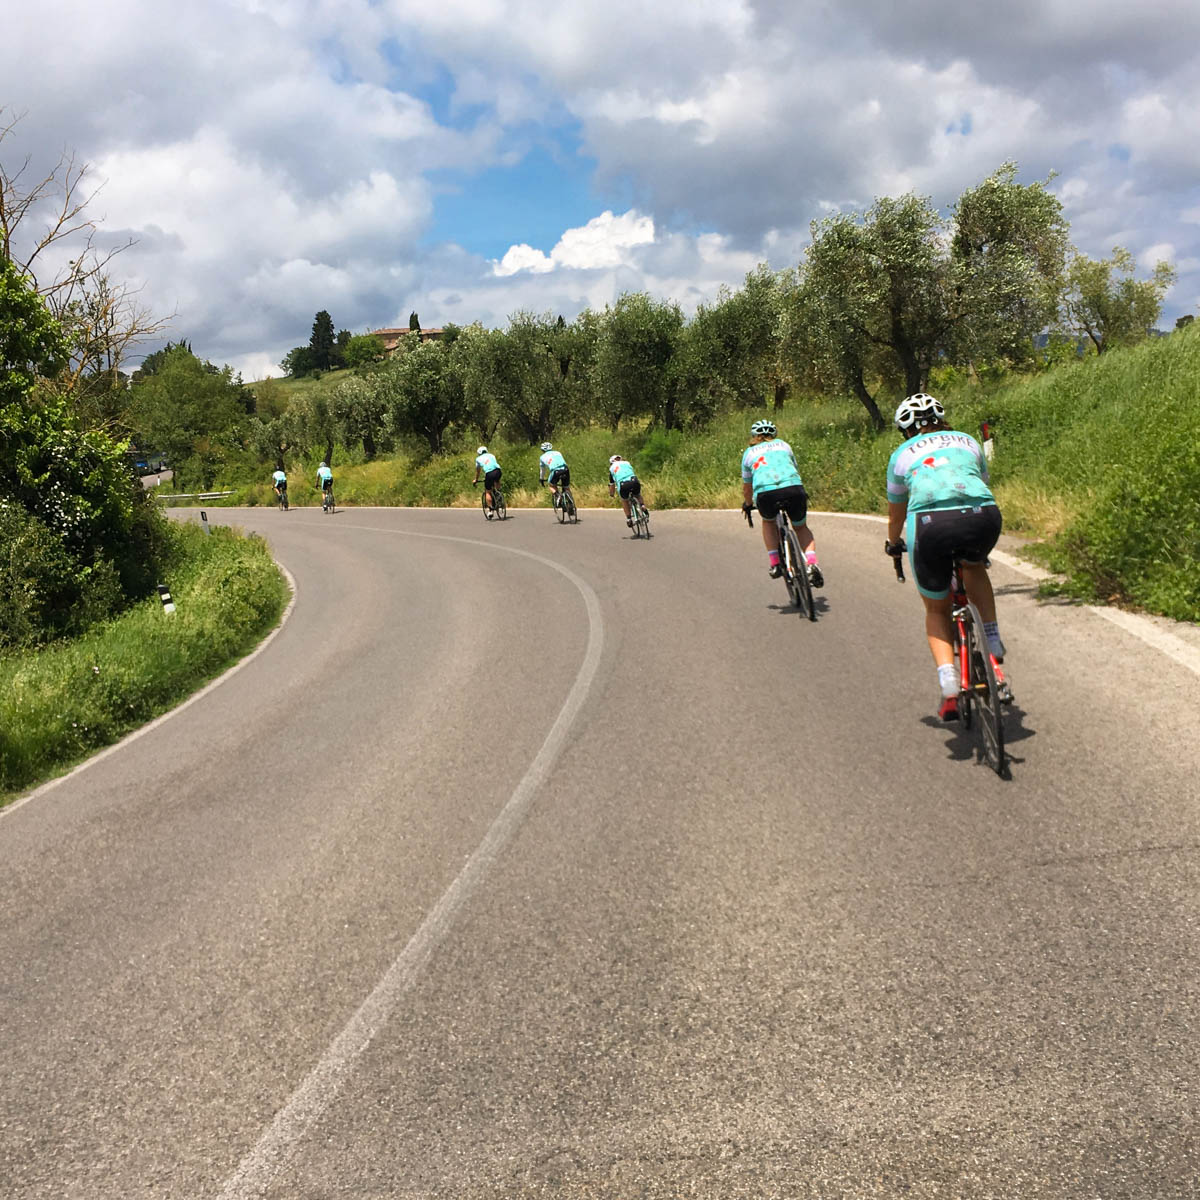 Cycling in Tuscany, Topbike Tour of Tuscany - 'Eat-Drink-Ride'